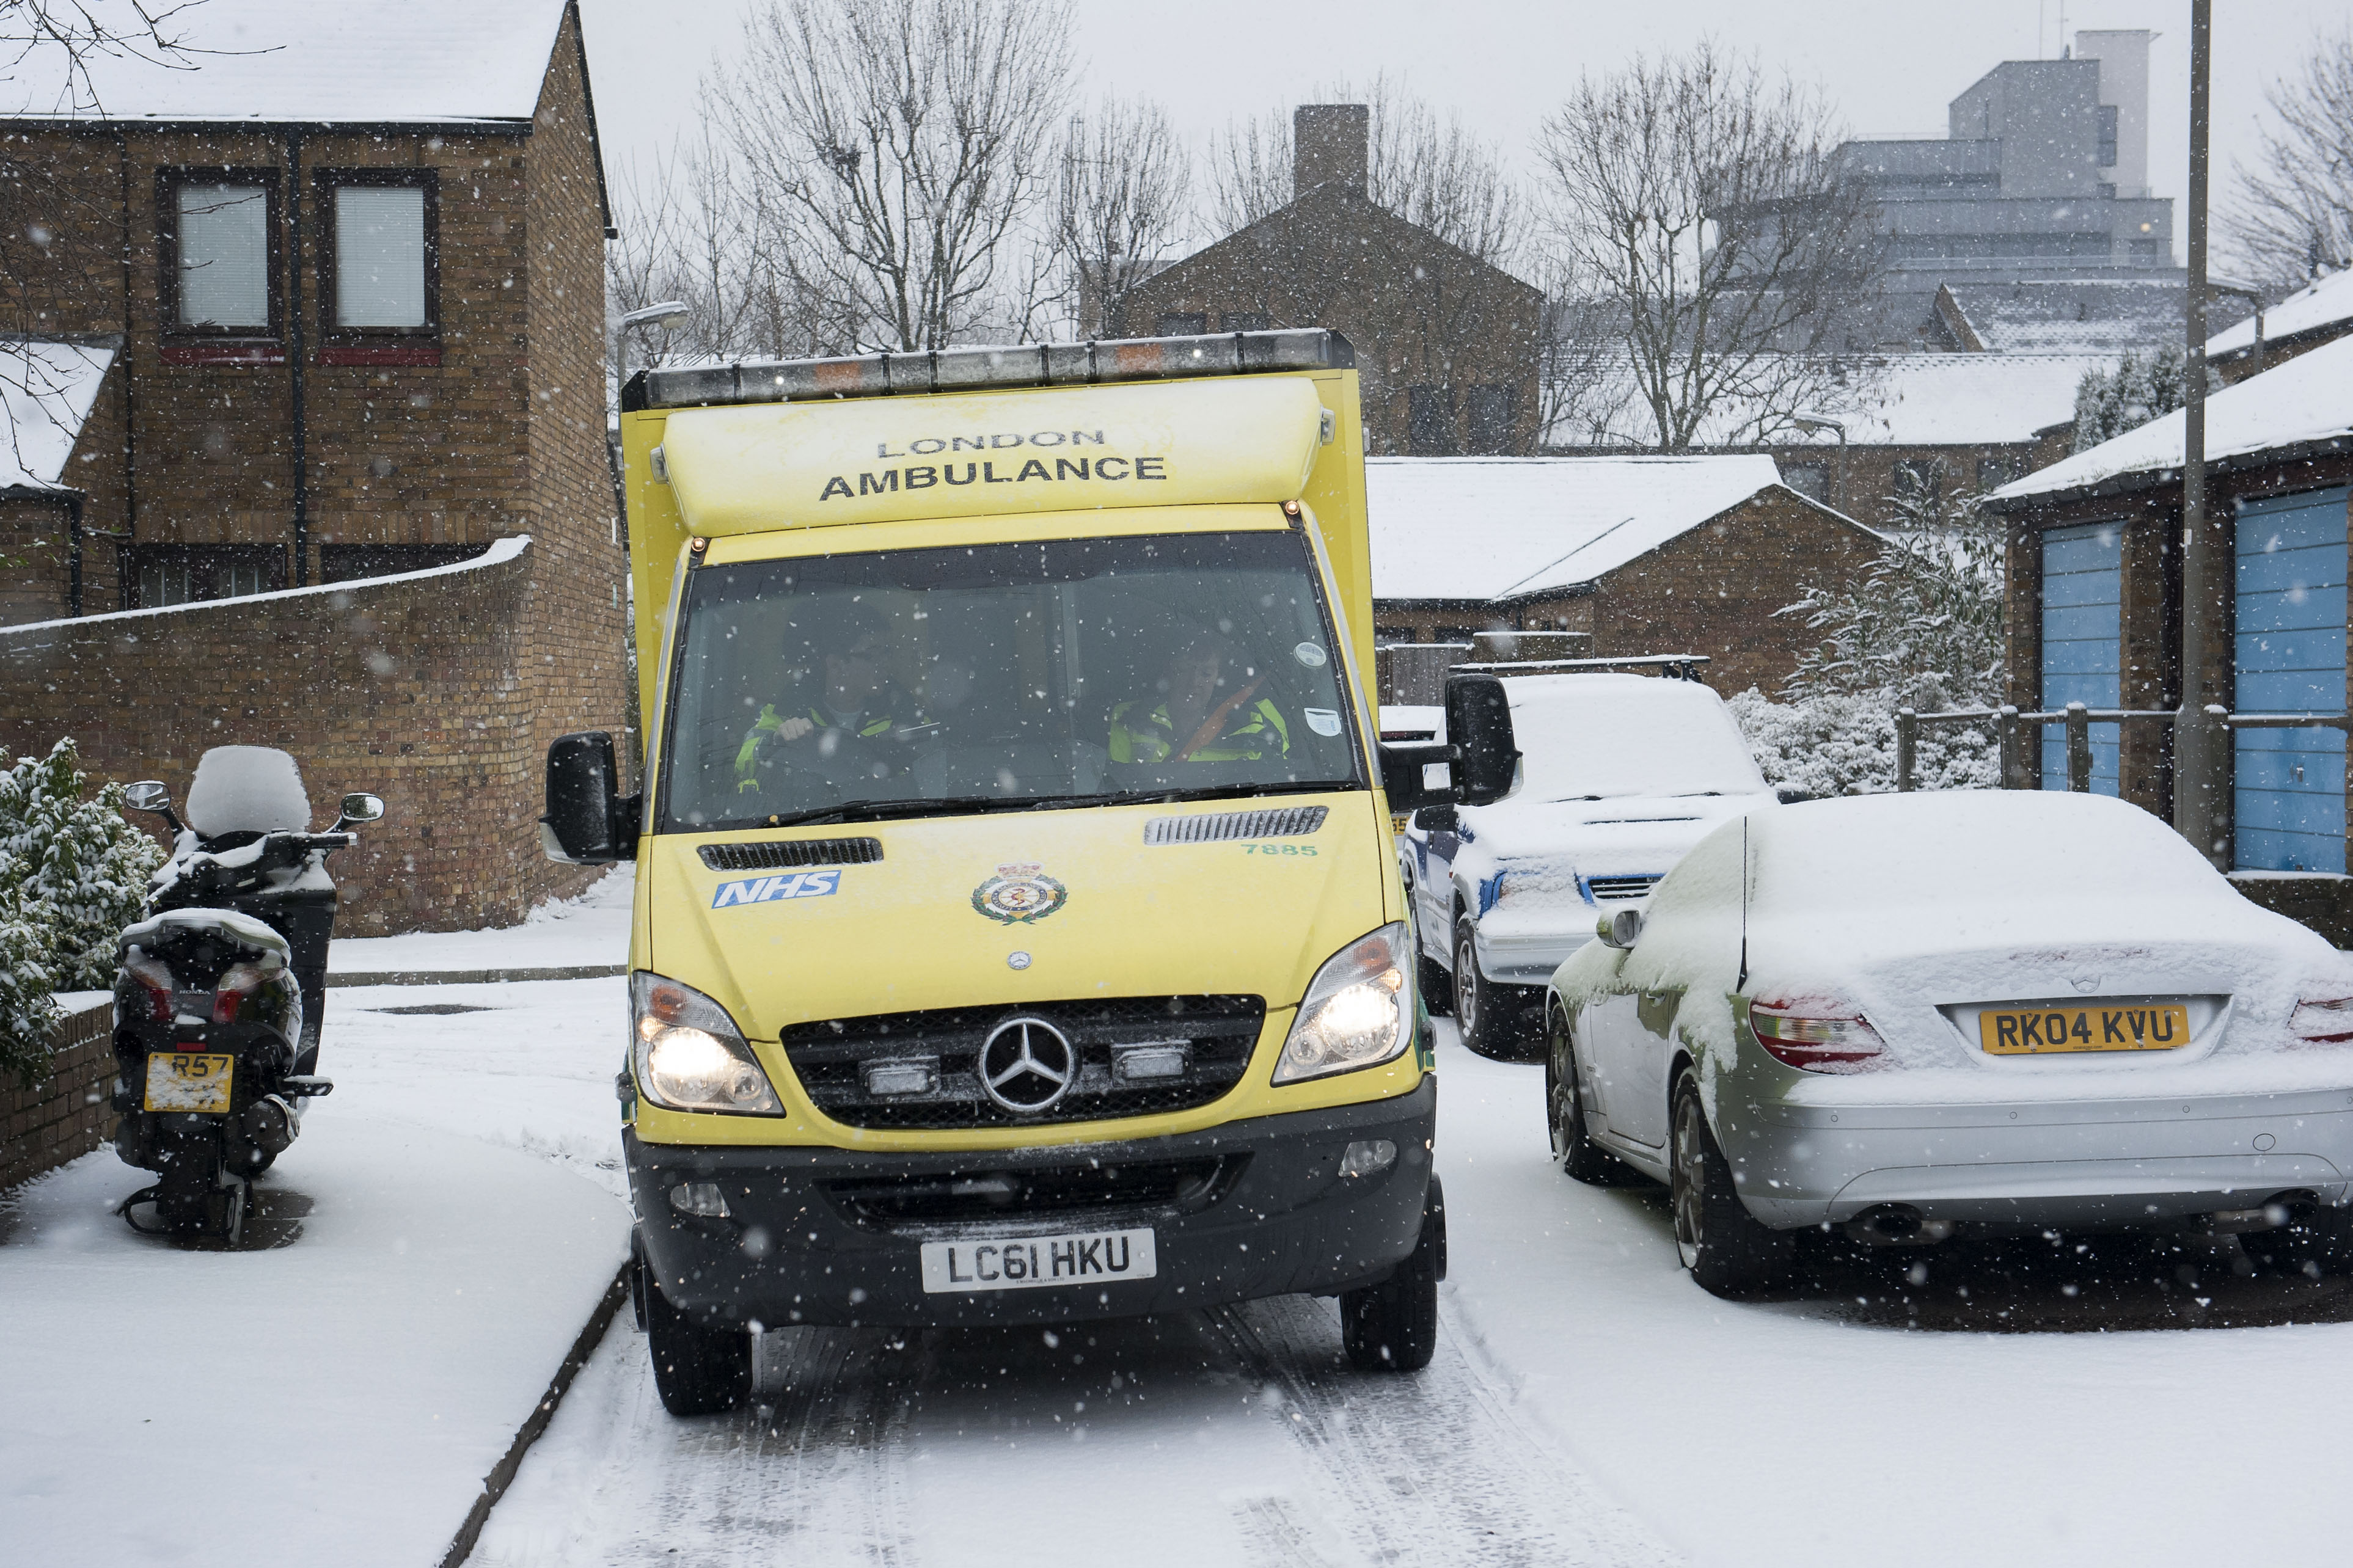 Ambulance in snow